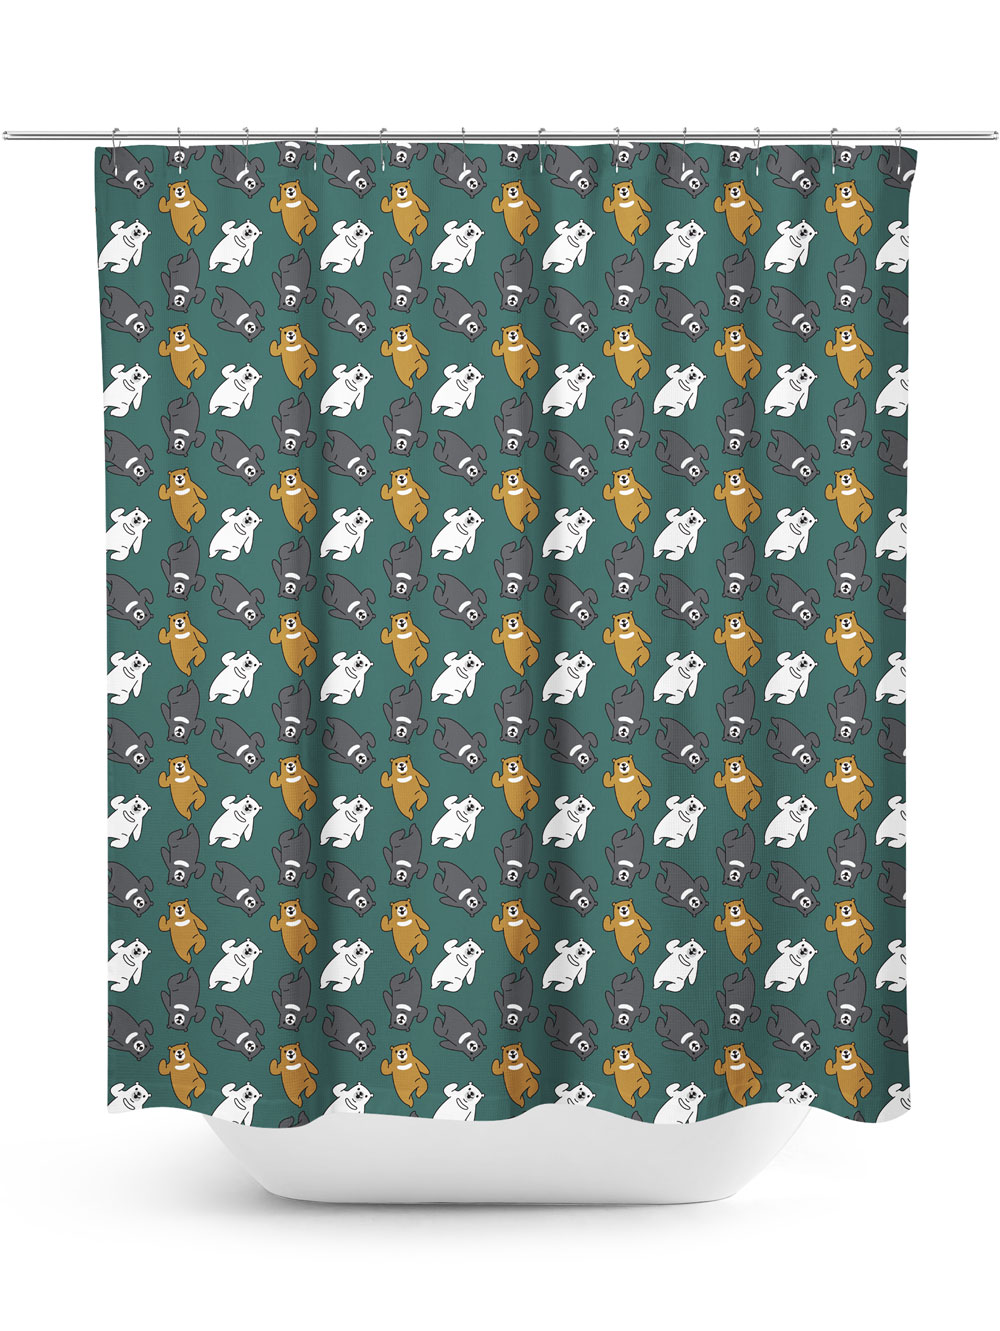 Dark green shower curtain with cartoon bears dancing